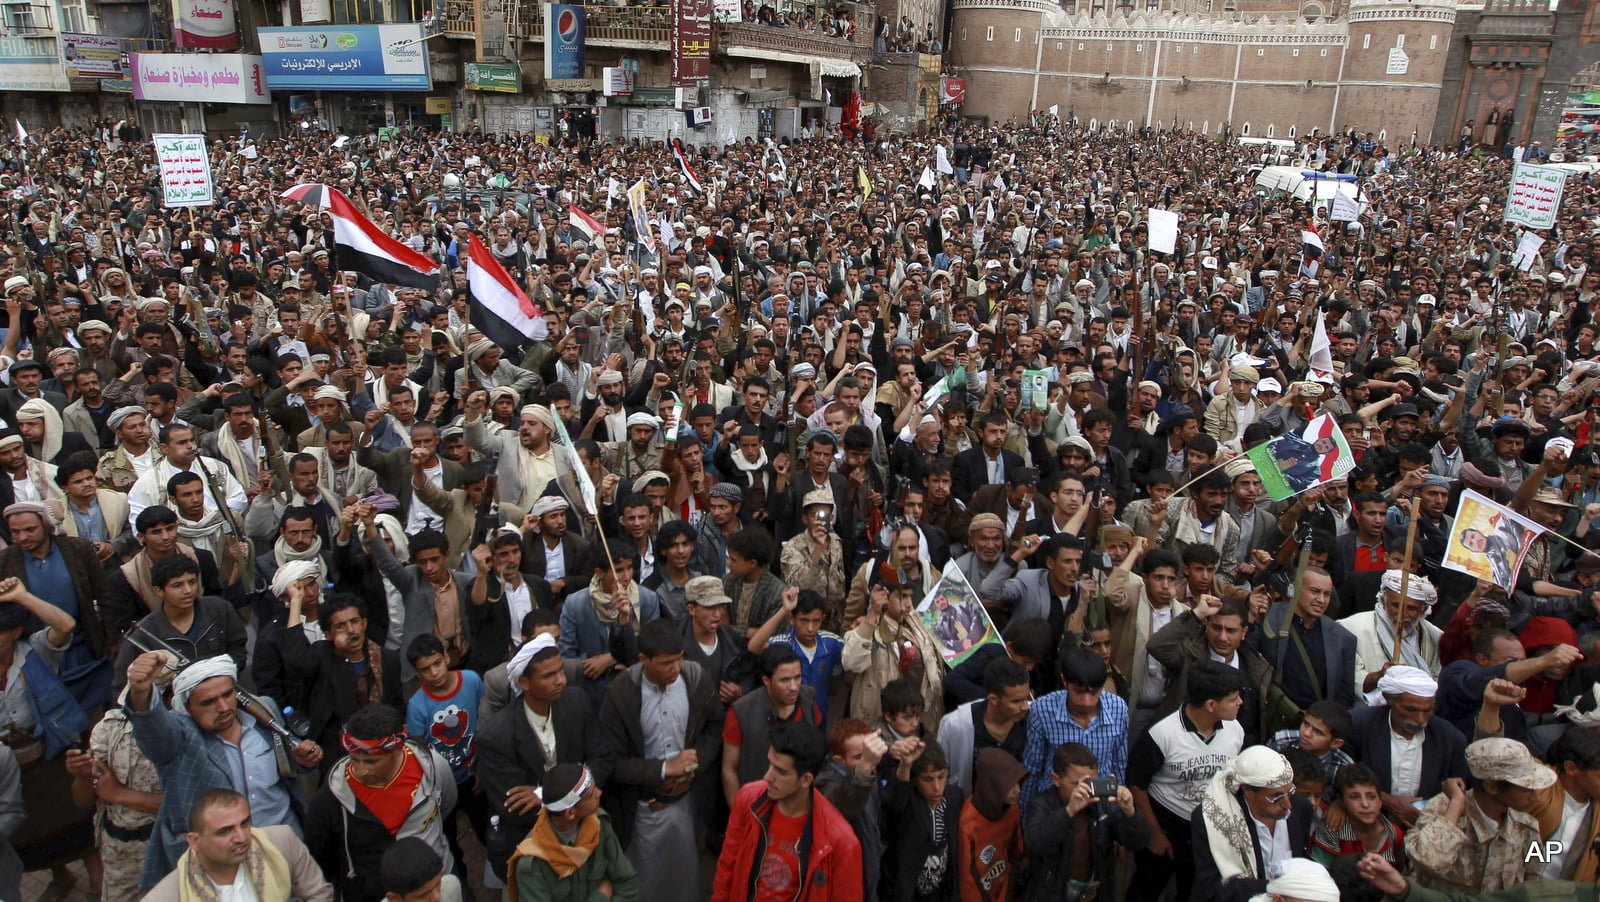 Yemen, UN Chief Seek Peace Talks With Iran-Allied Houthis